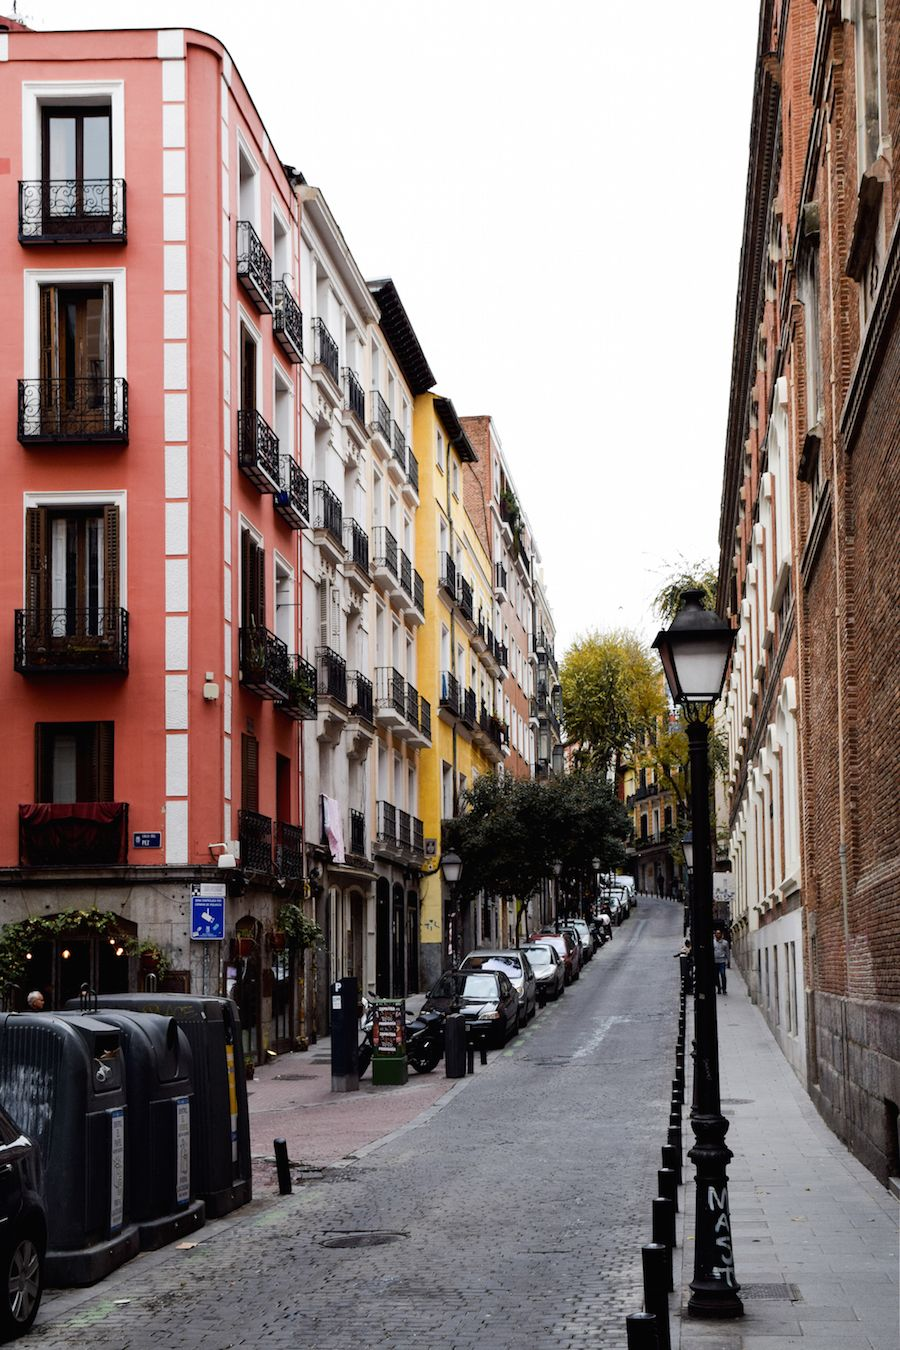 A street in Malasaña, Madrid